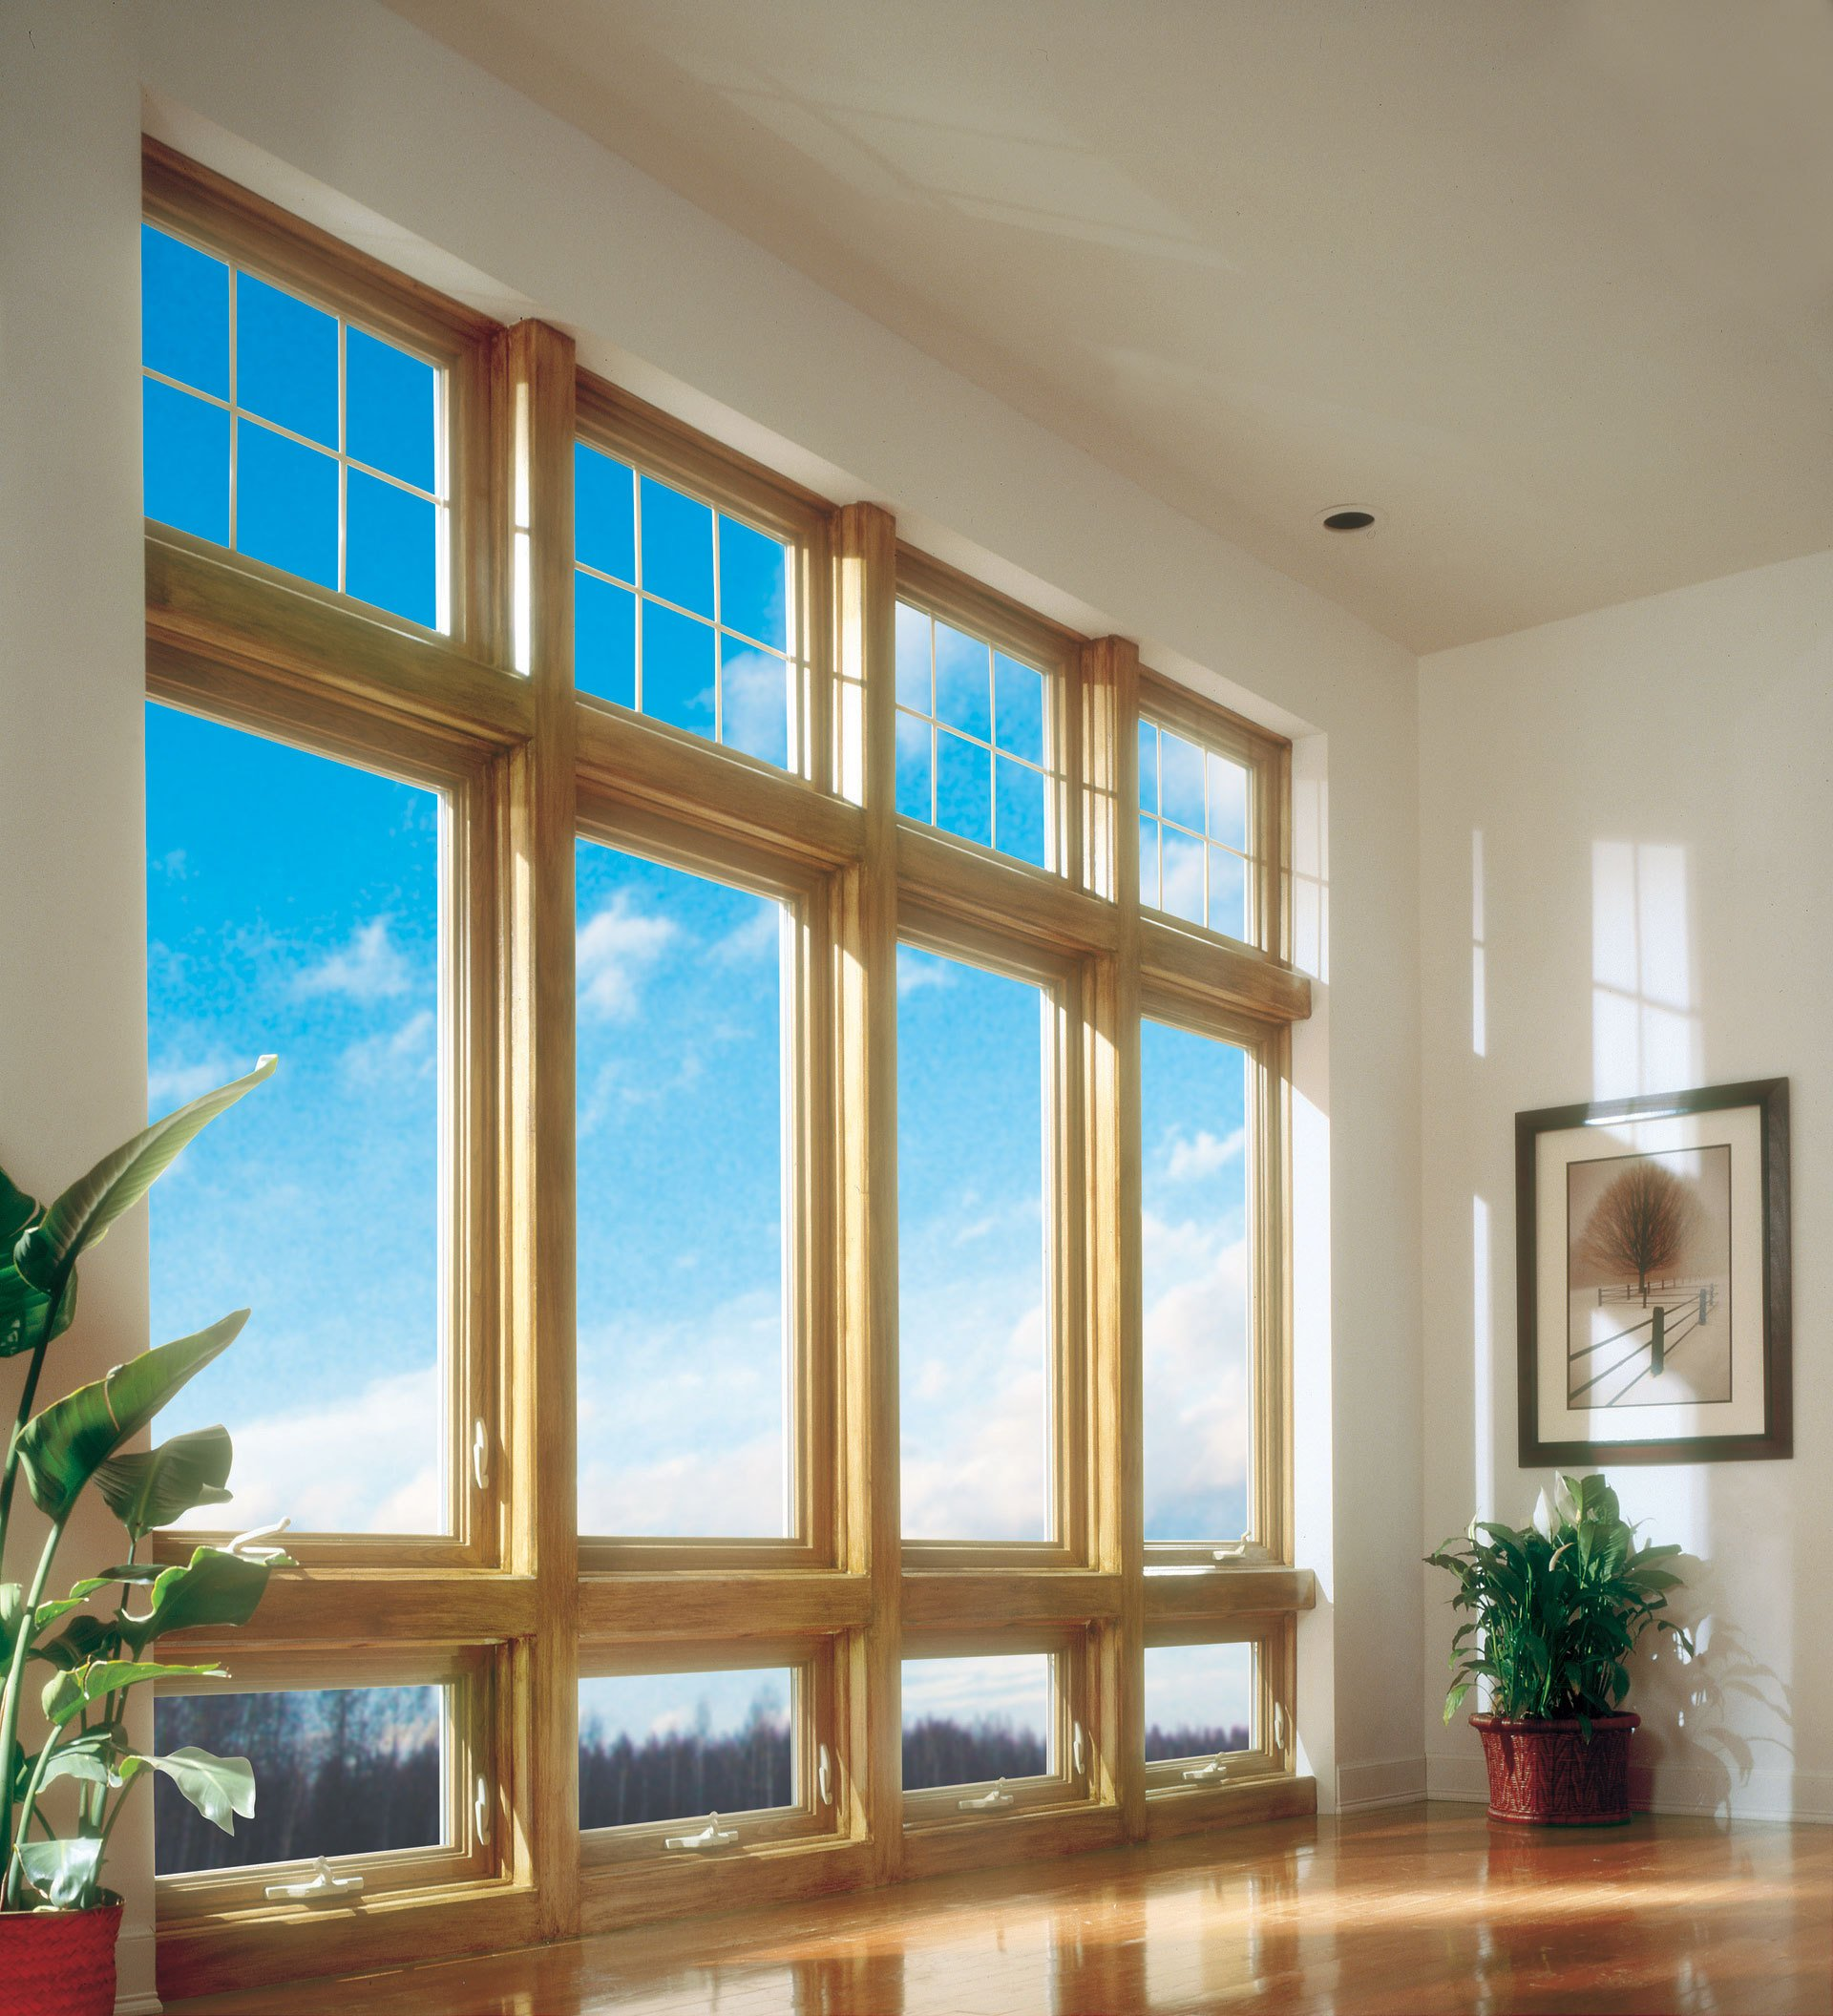 Vinyl Replacement Windows In Cincinnati, OH